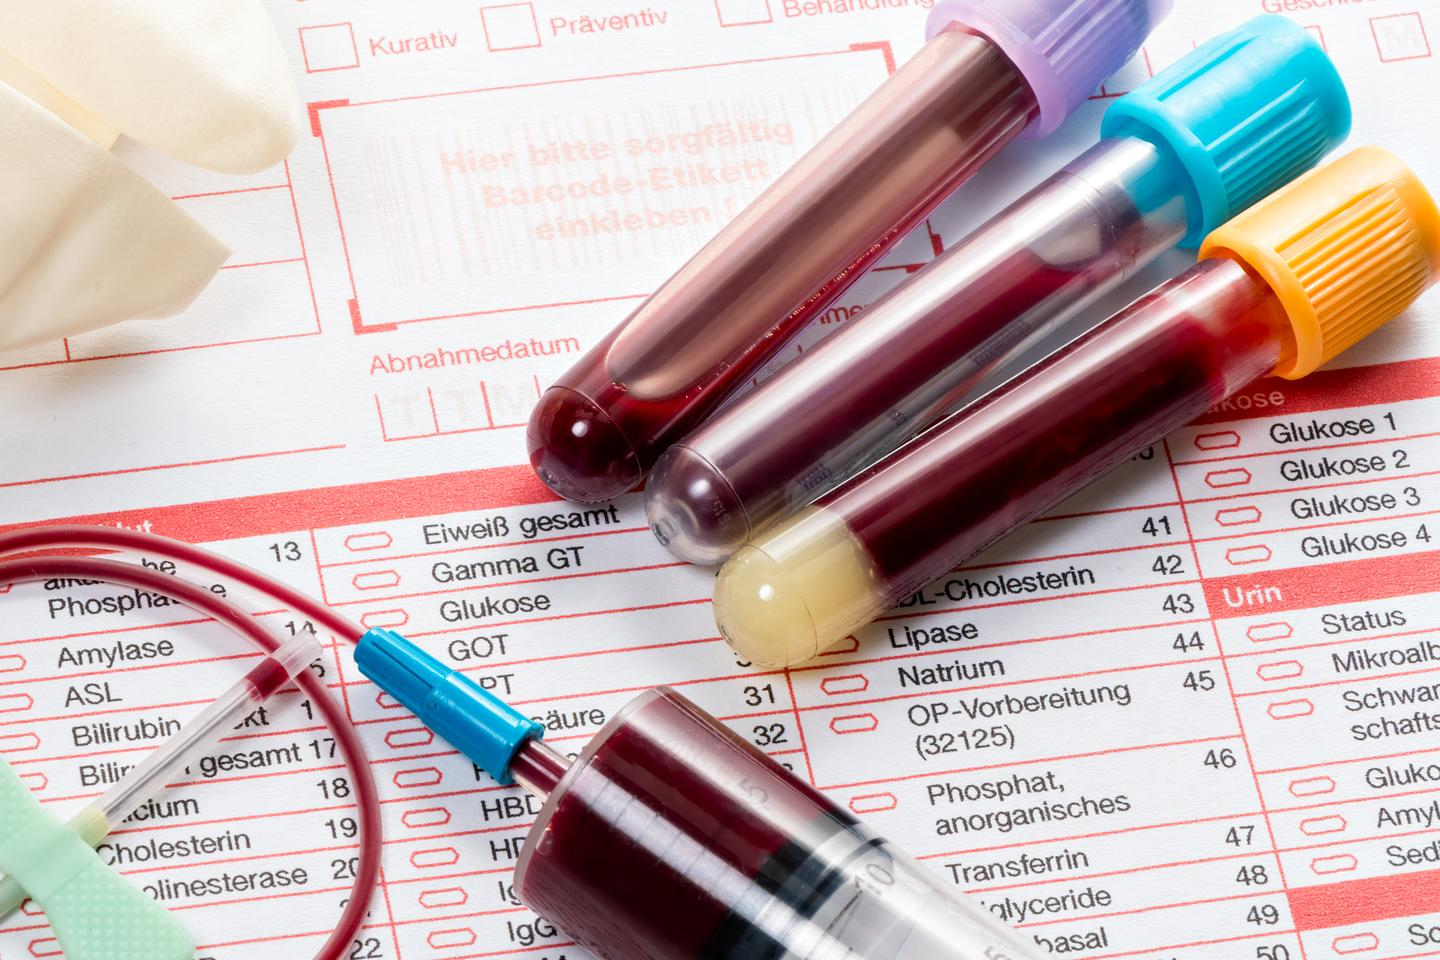 A new blood test for cancer has shown great promise in a new study, with the ability to detect more than 20 types of cancer